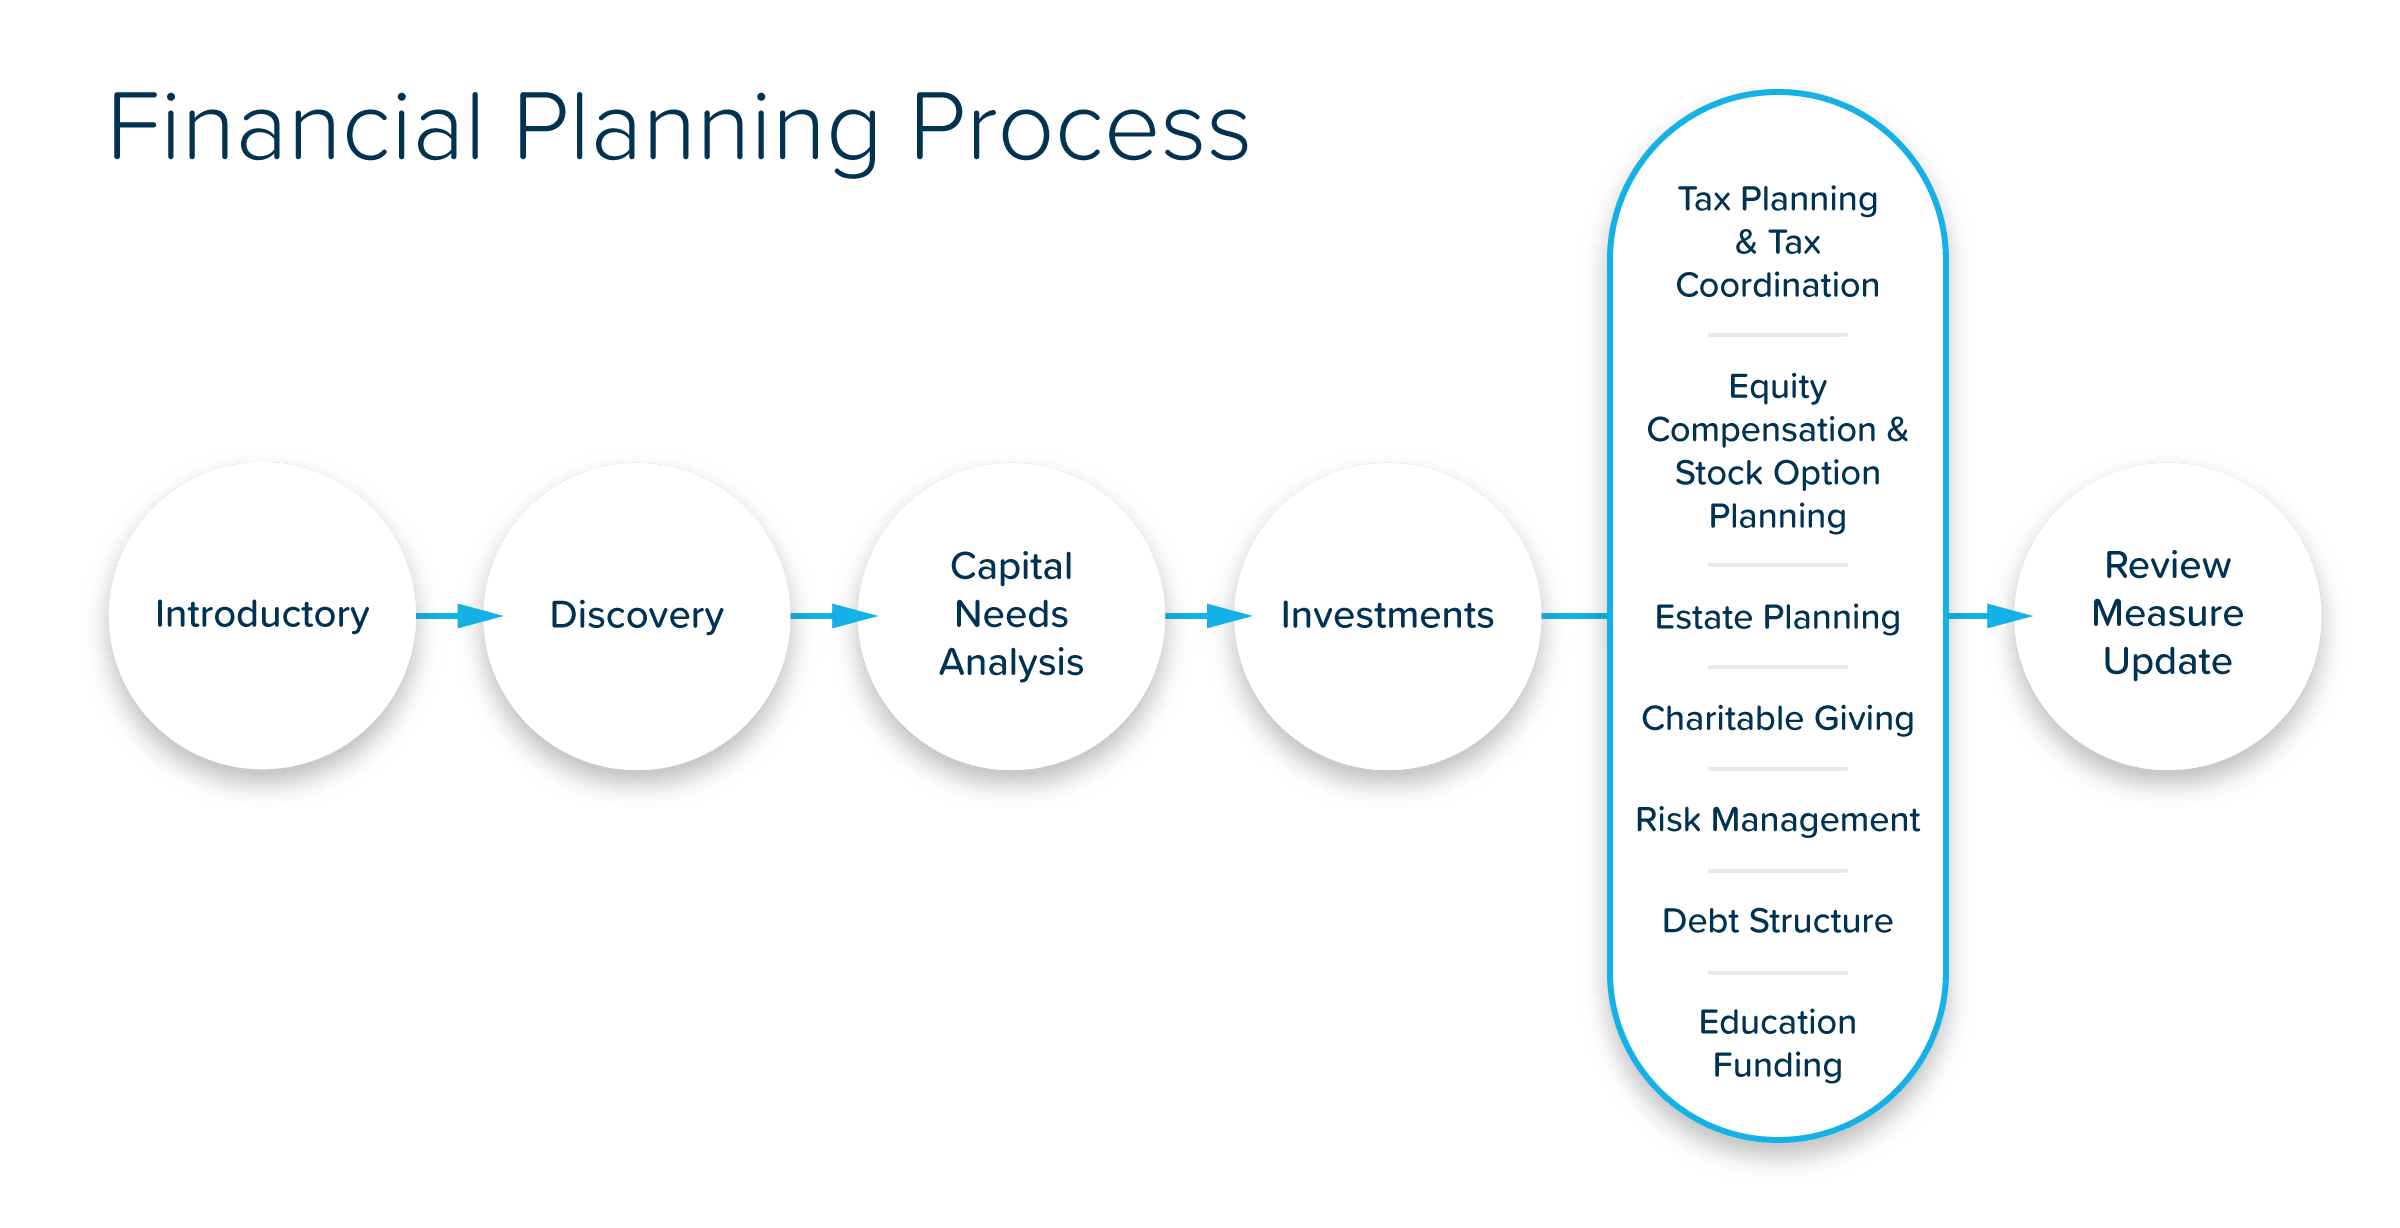 FinancialPlanningProcess_Infographic_V3